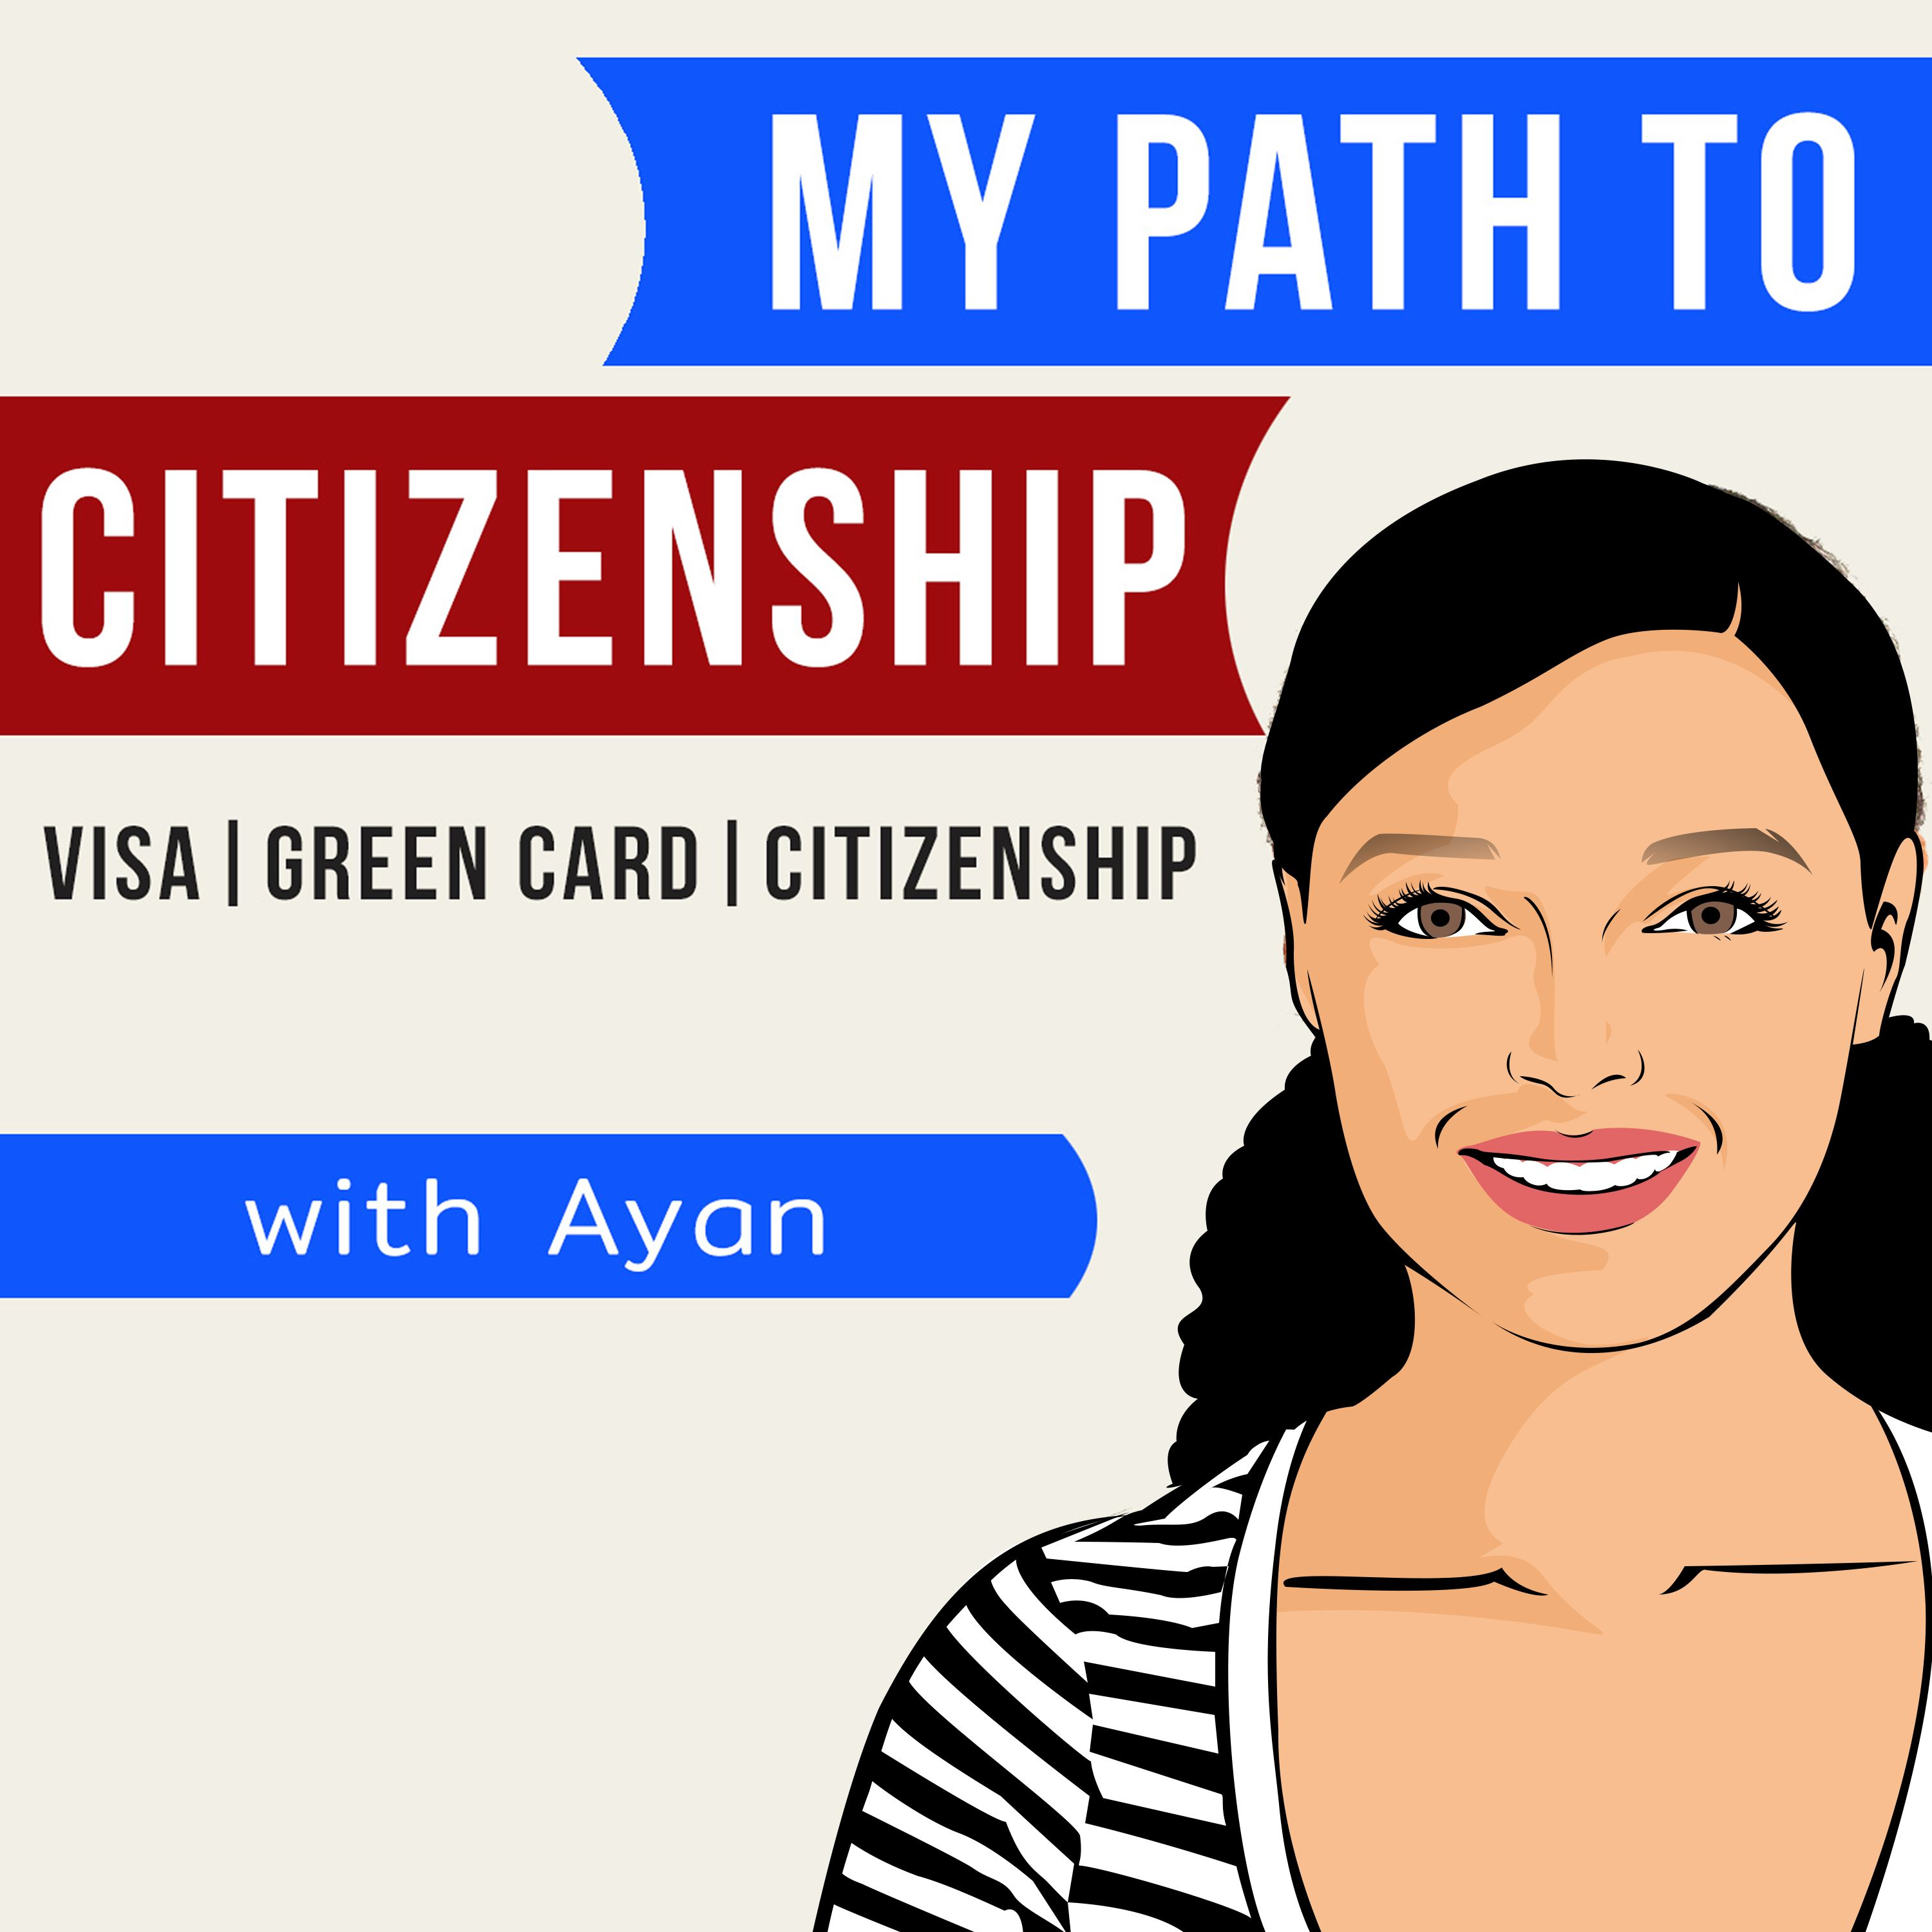 EP33: 10 Reasons USCIS Suspects Immigration Fraud